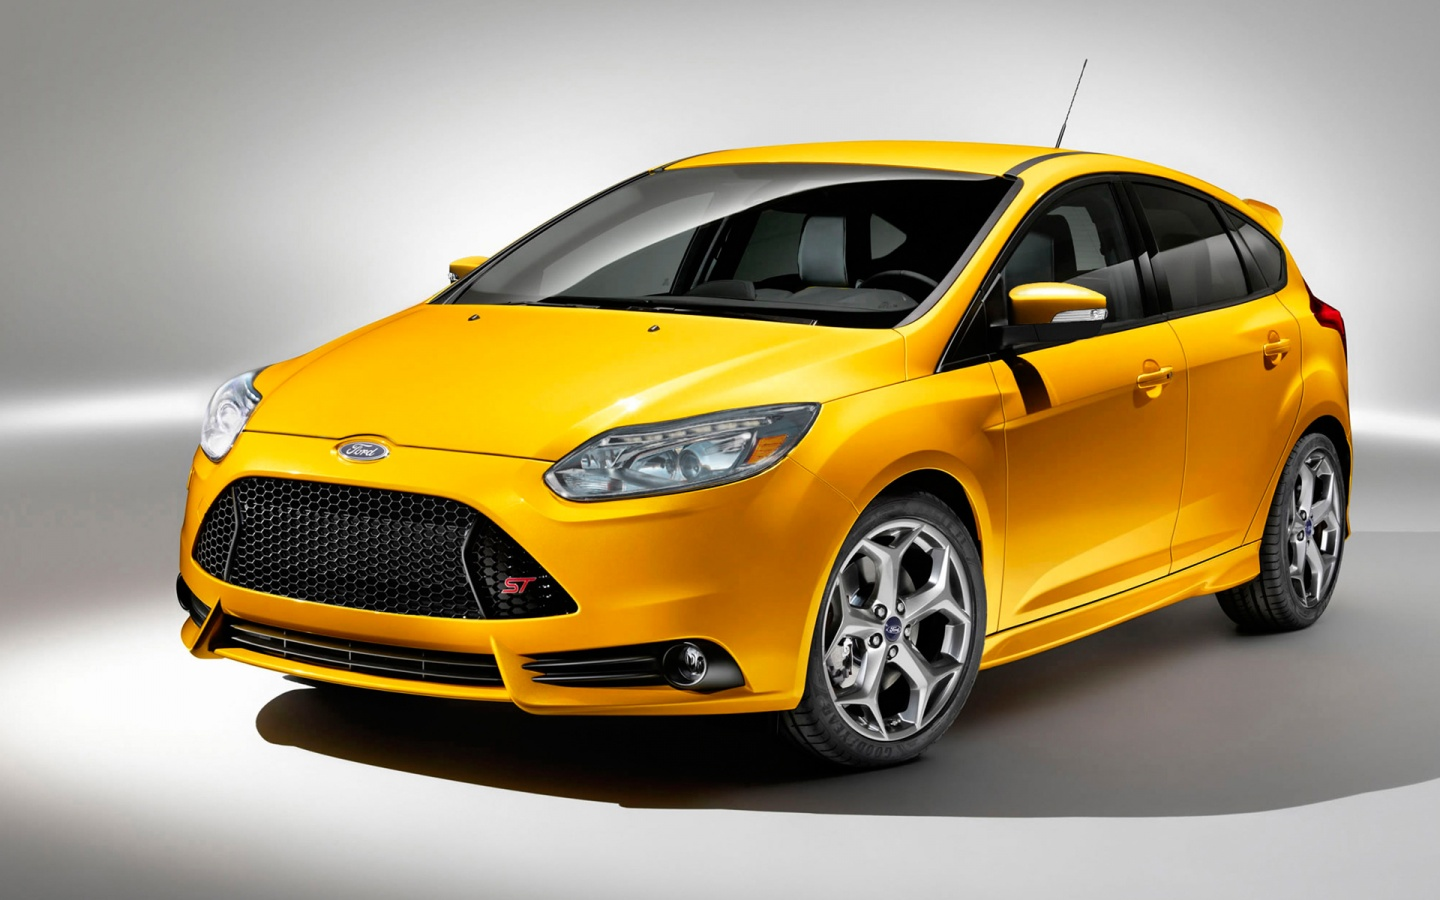 2013 Ford Focus ST Wallpaper HD Car Wallpapers 1440x900